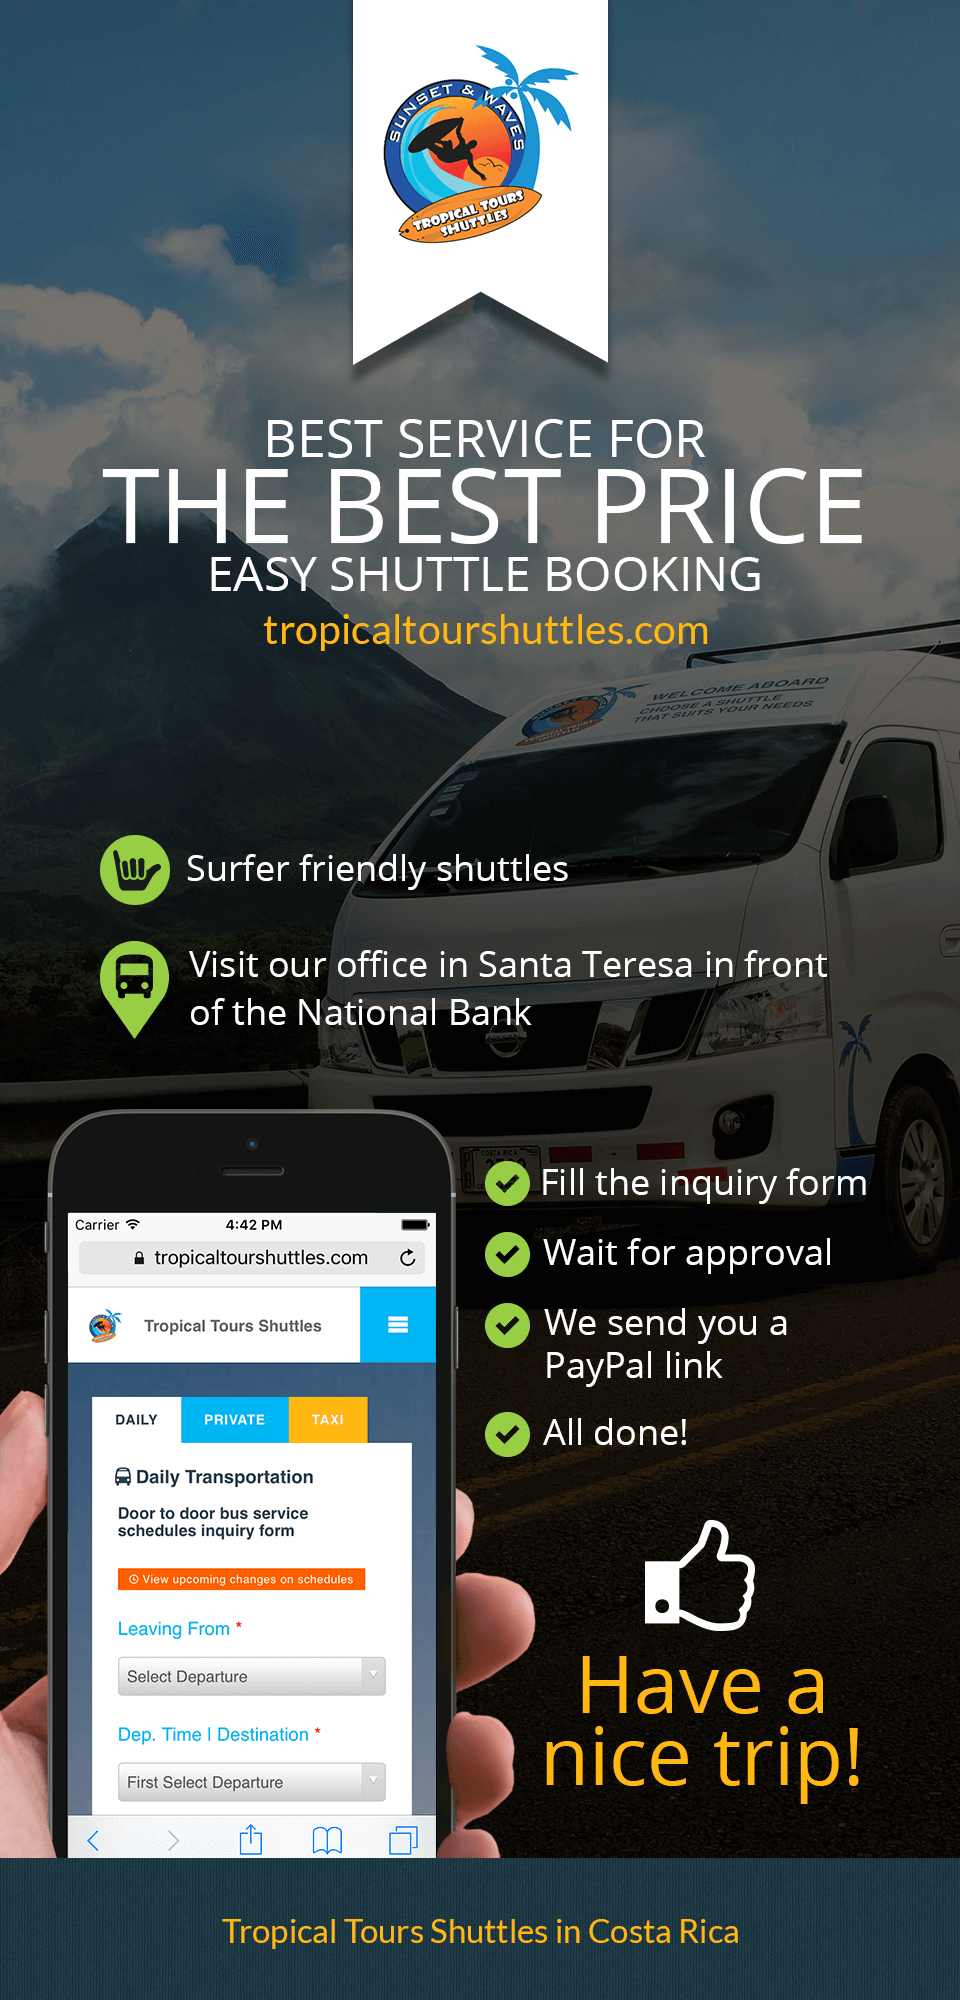 Tropical Tours Shuttles Booking Infographic